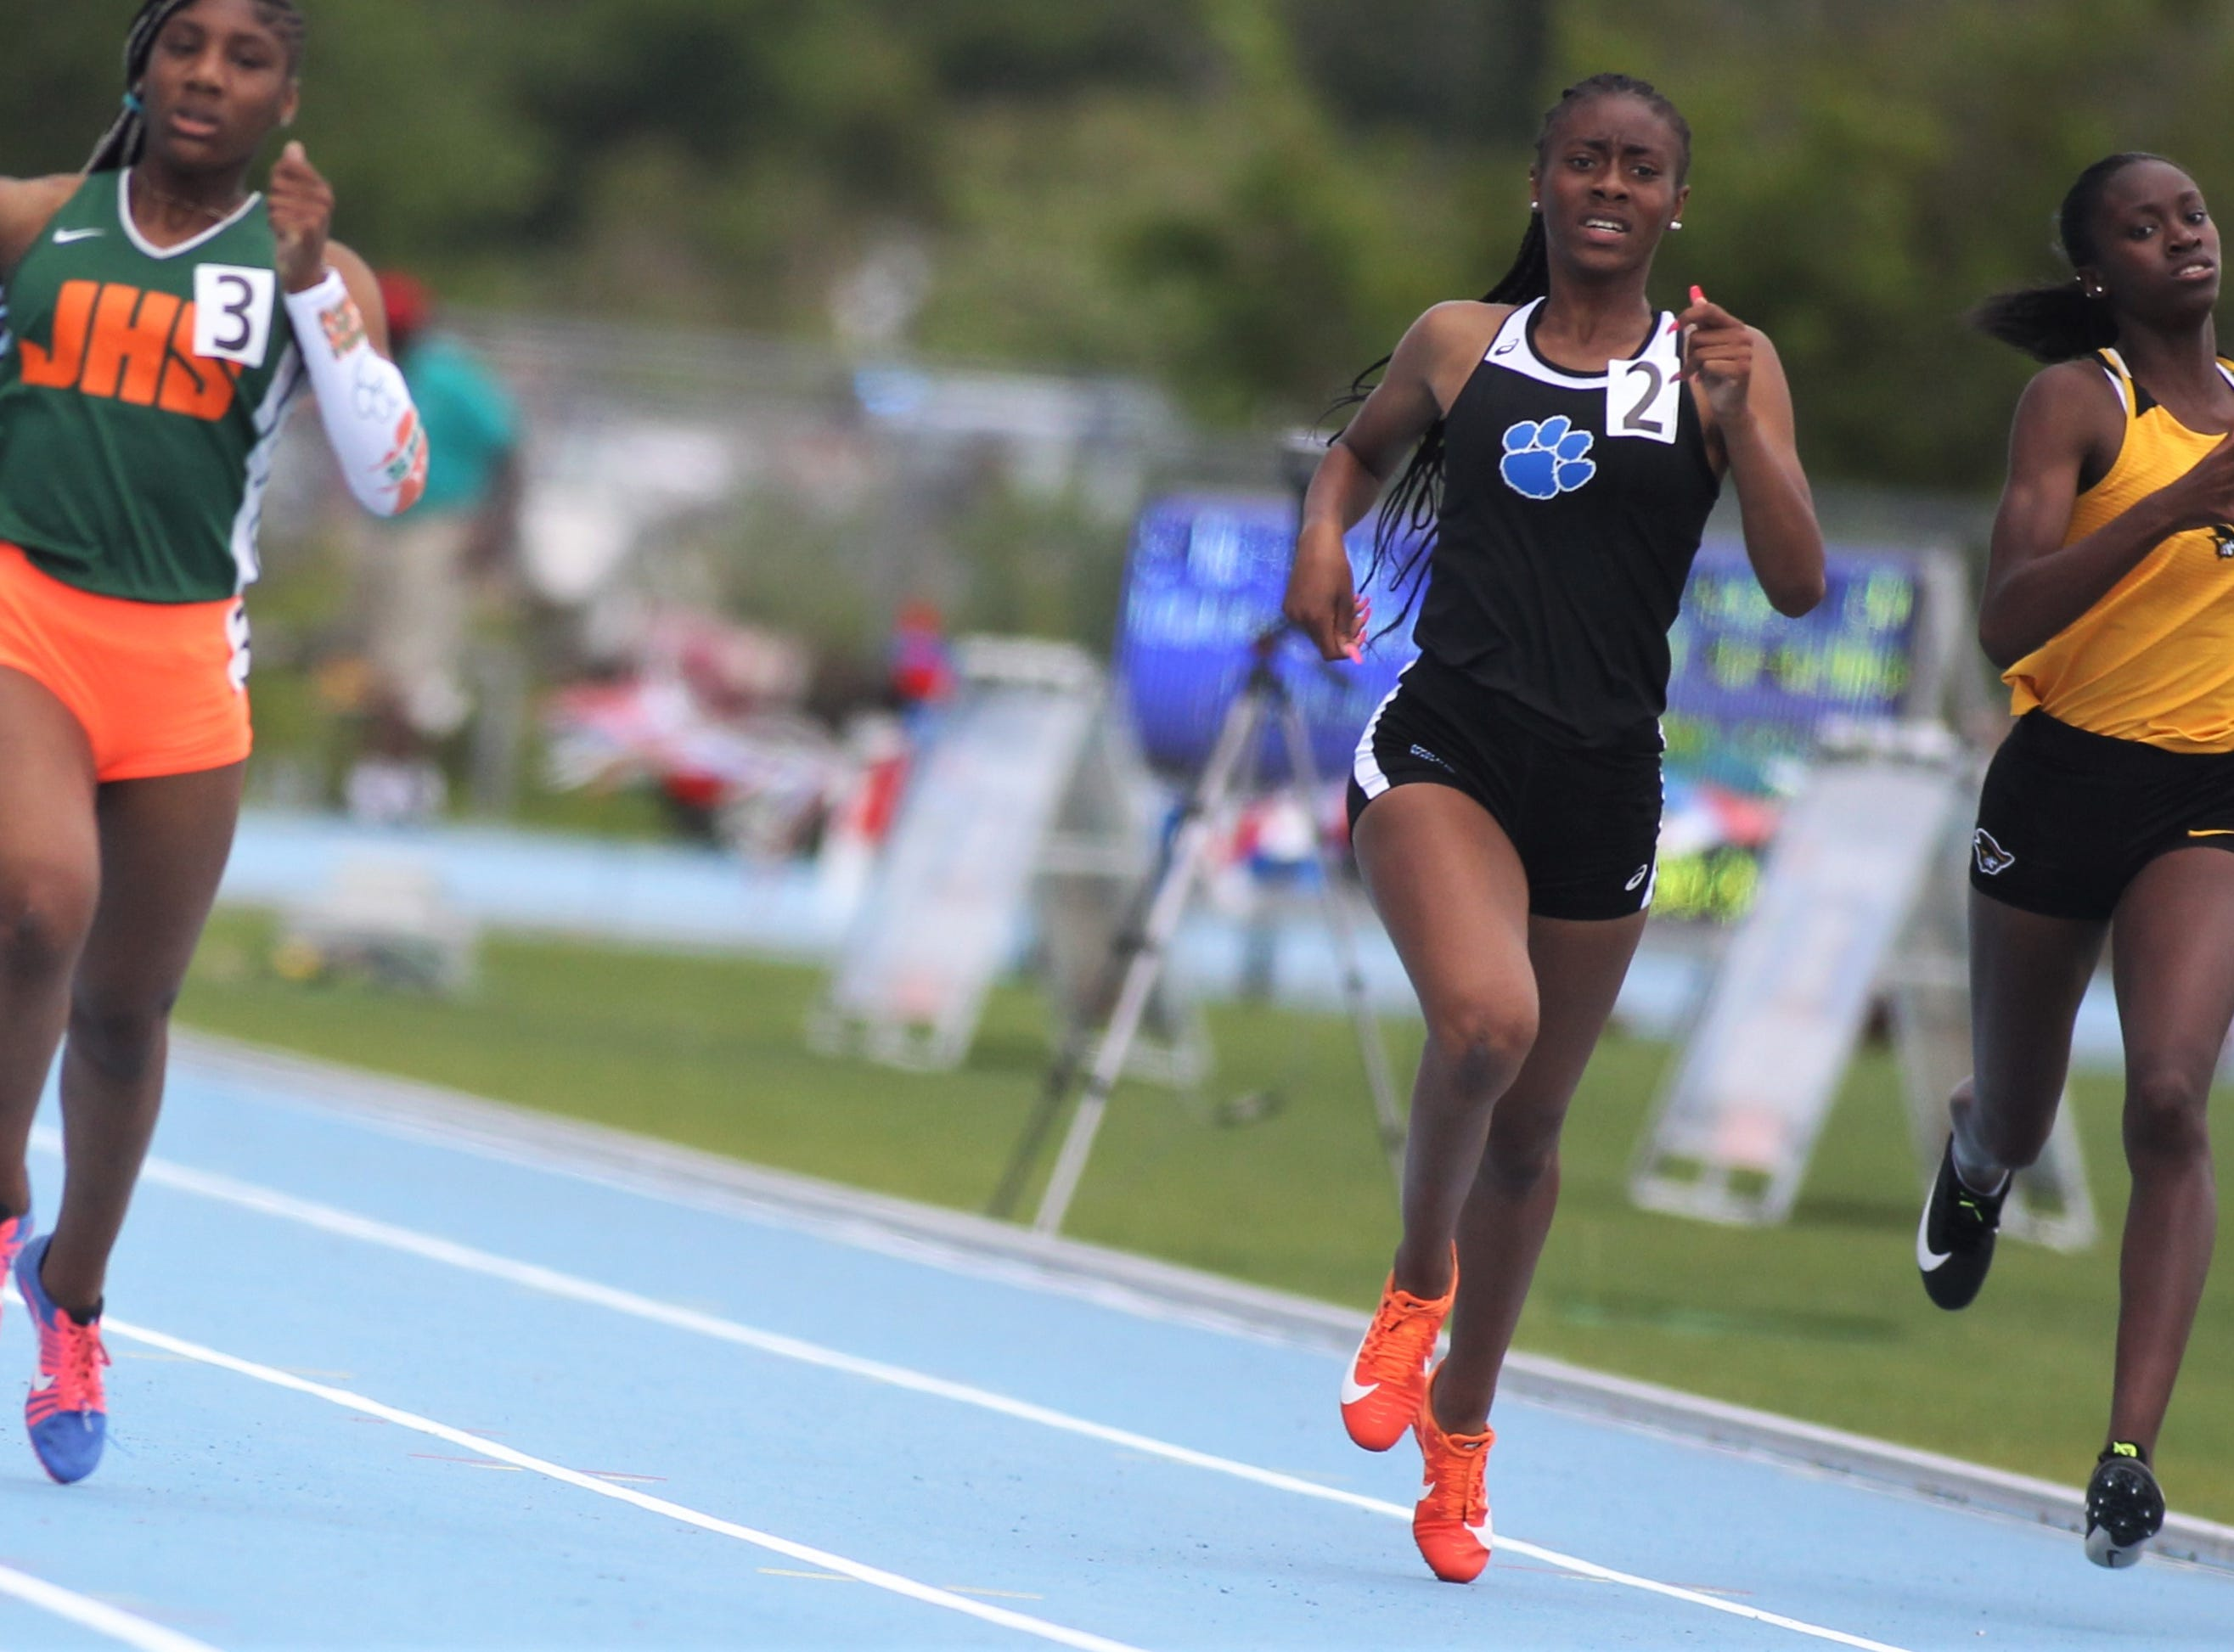 Godby junior A'Kyrah O'Banner took eighth in the Class 2A 400m dash at the FHSAA Track and Field State Championships at UNF's Hodges Stadium in Jacksonville on May 4, 2019.